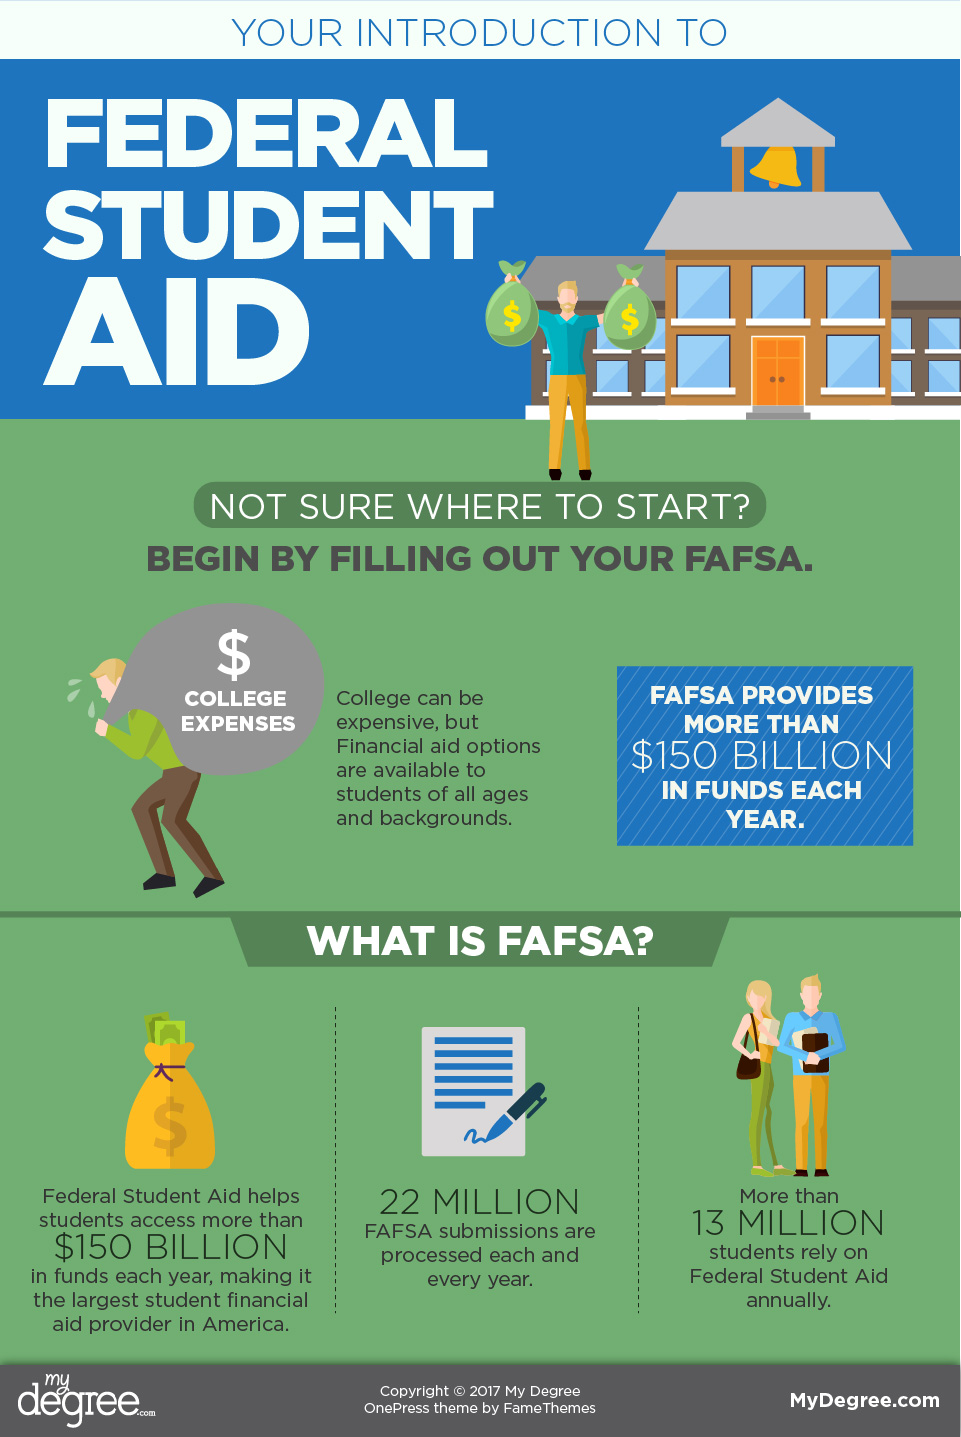 FAFSA 101: Your introduction to federal student aid